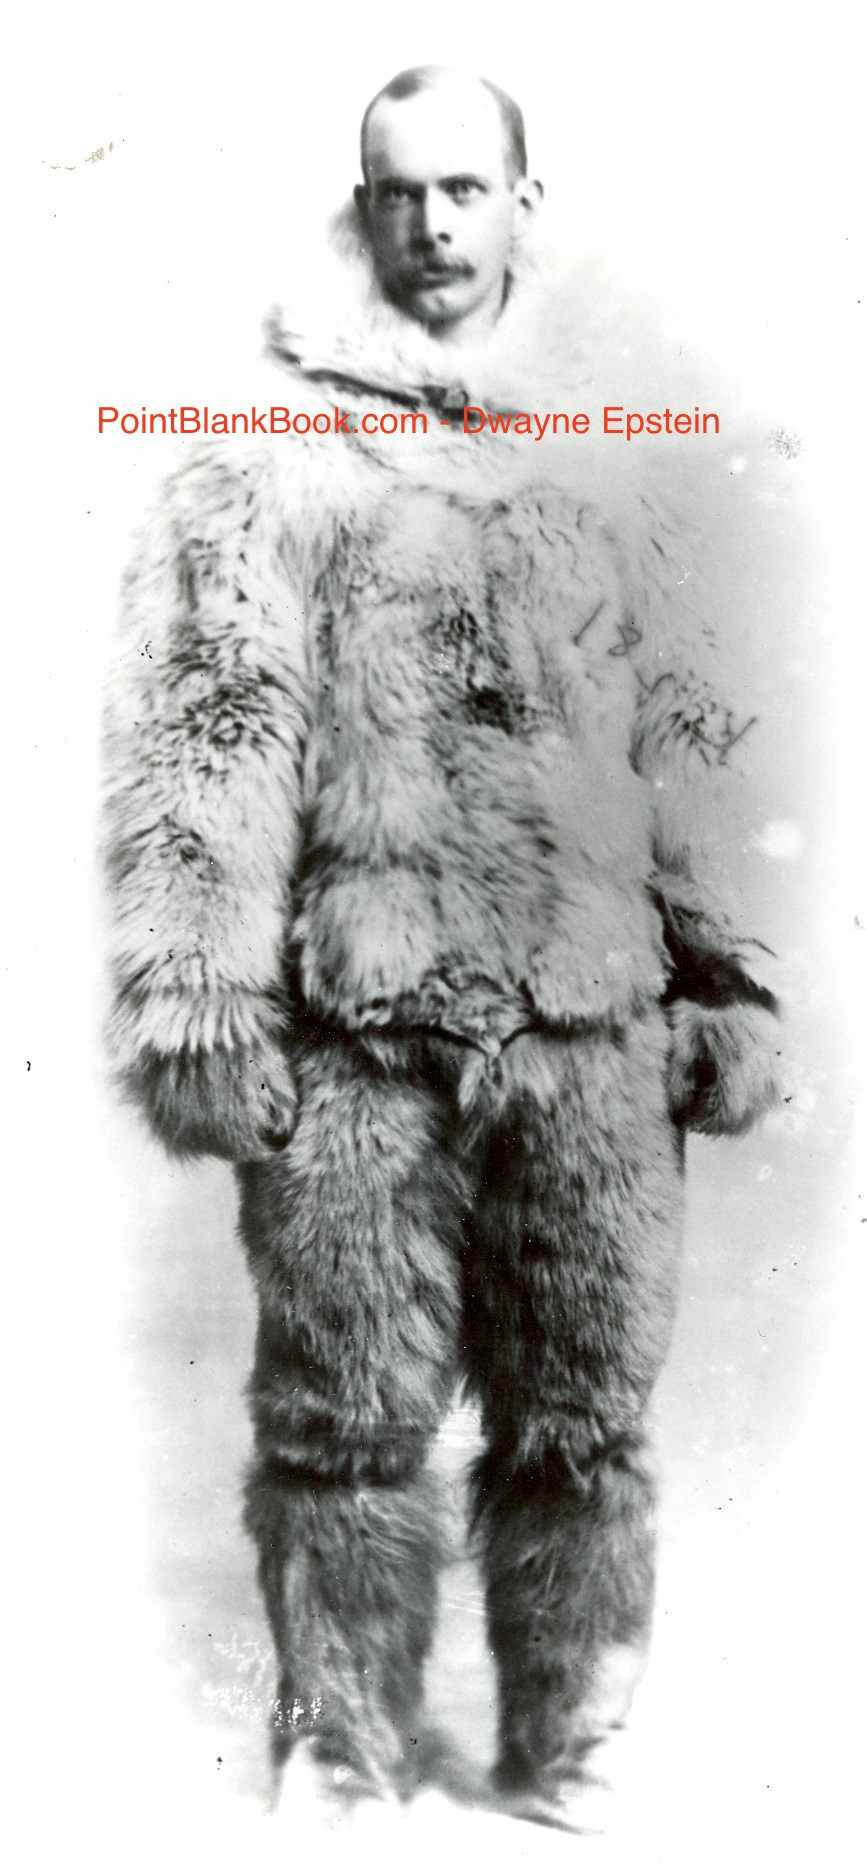 Lee Marvin's great uncle, Ross Marvin, pictured above in Arctic gear during the Peary Expedition.